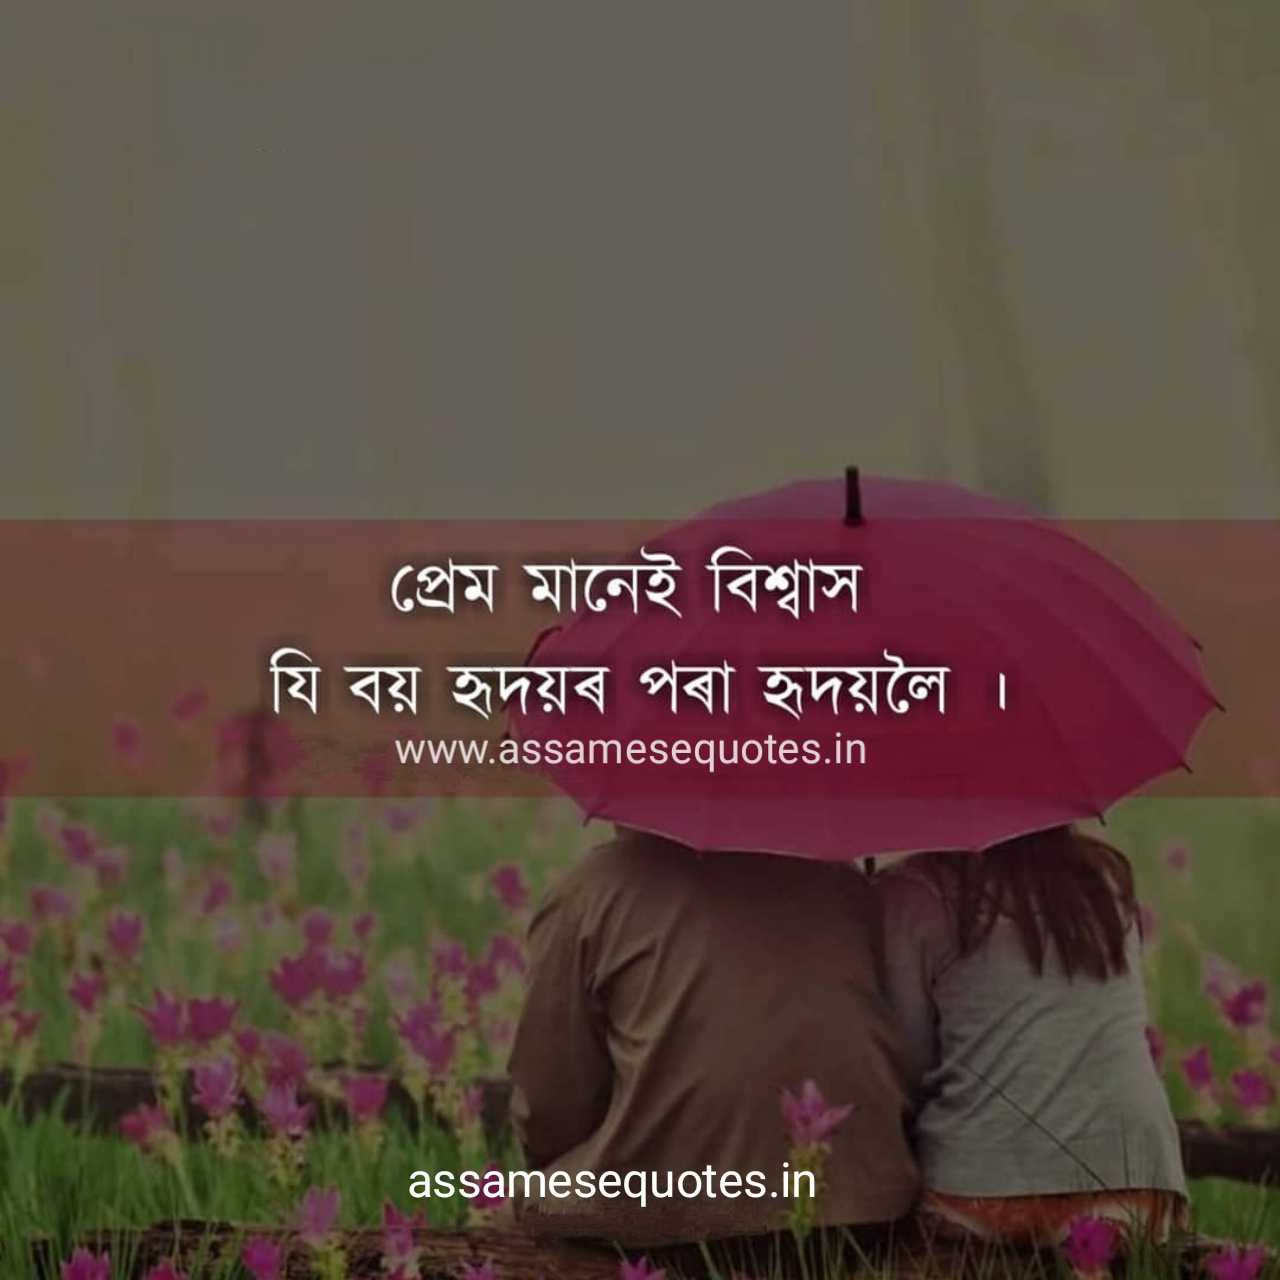 Assamese Love Shayari , SMS | Assamese Love Status and Quotes